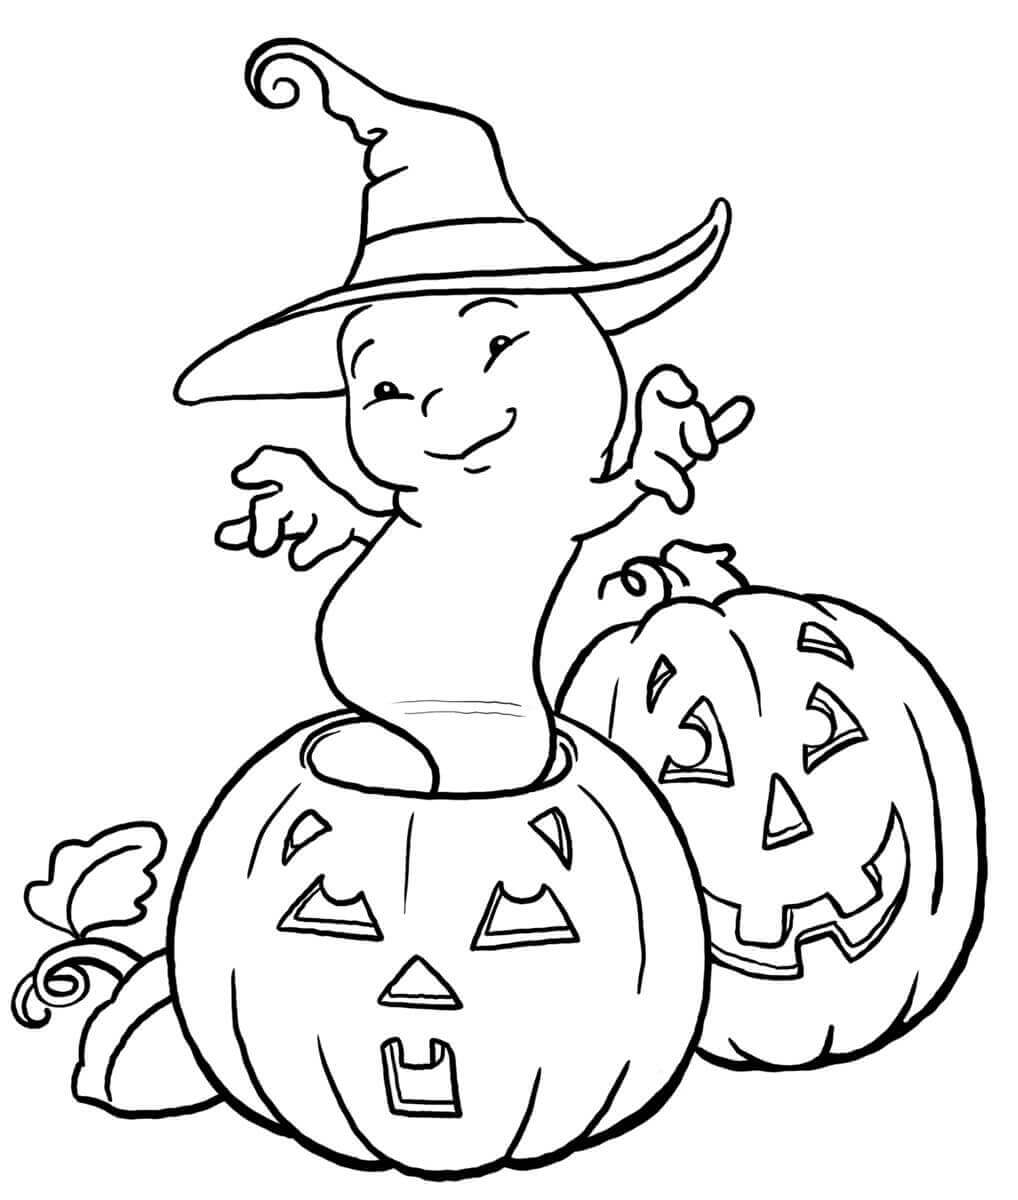 30 Free Printable Ghost Coloring Pages (Halloween Ghost Coloring ...